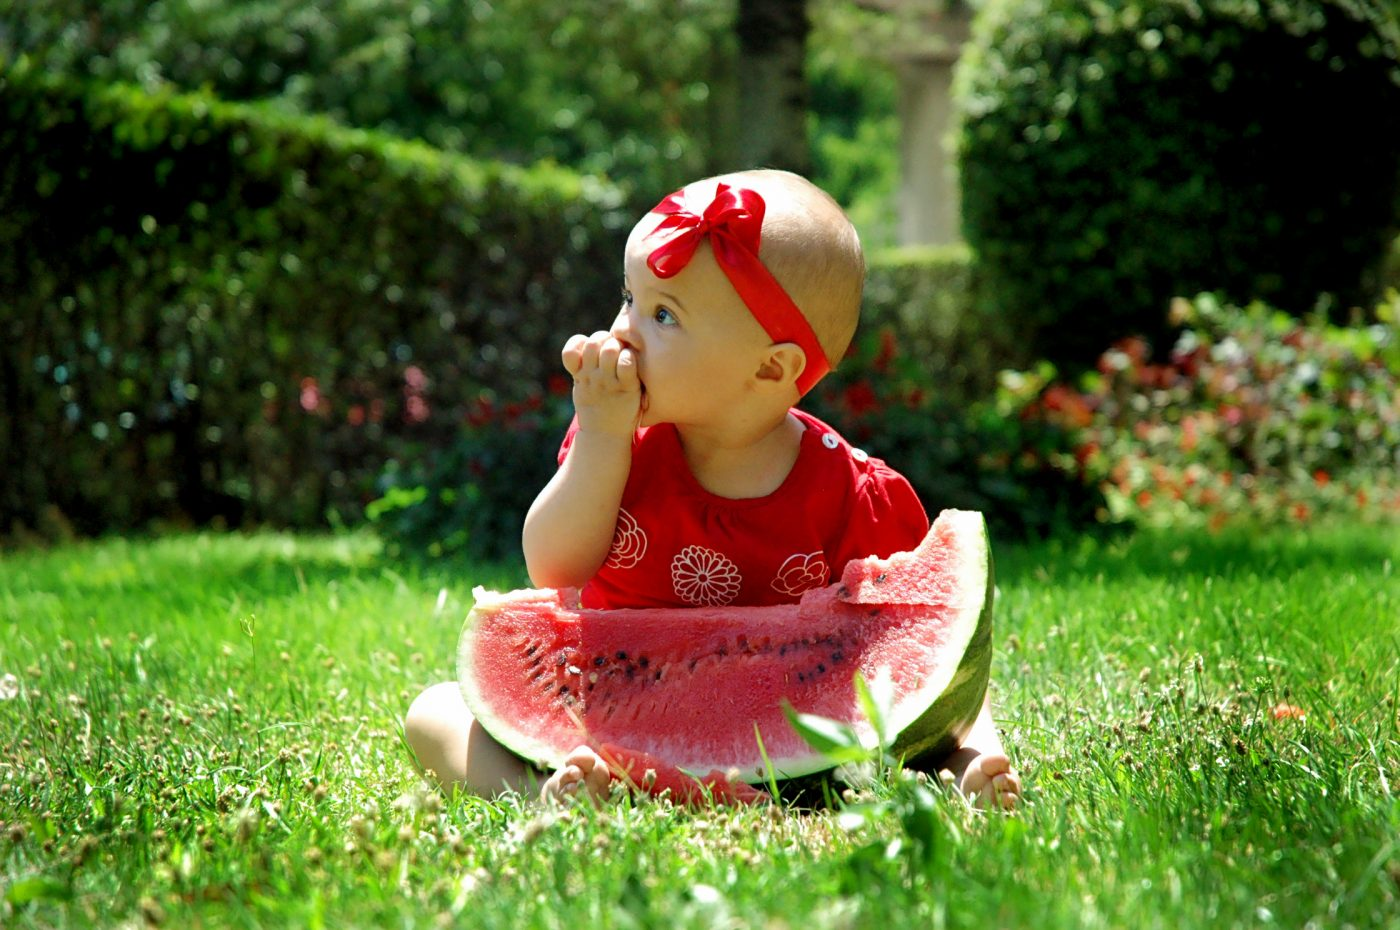 watermelon-my-sweet-baby-1321799-freeimgaes-by-simona-balint